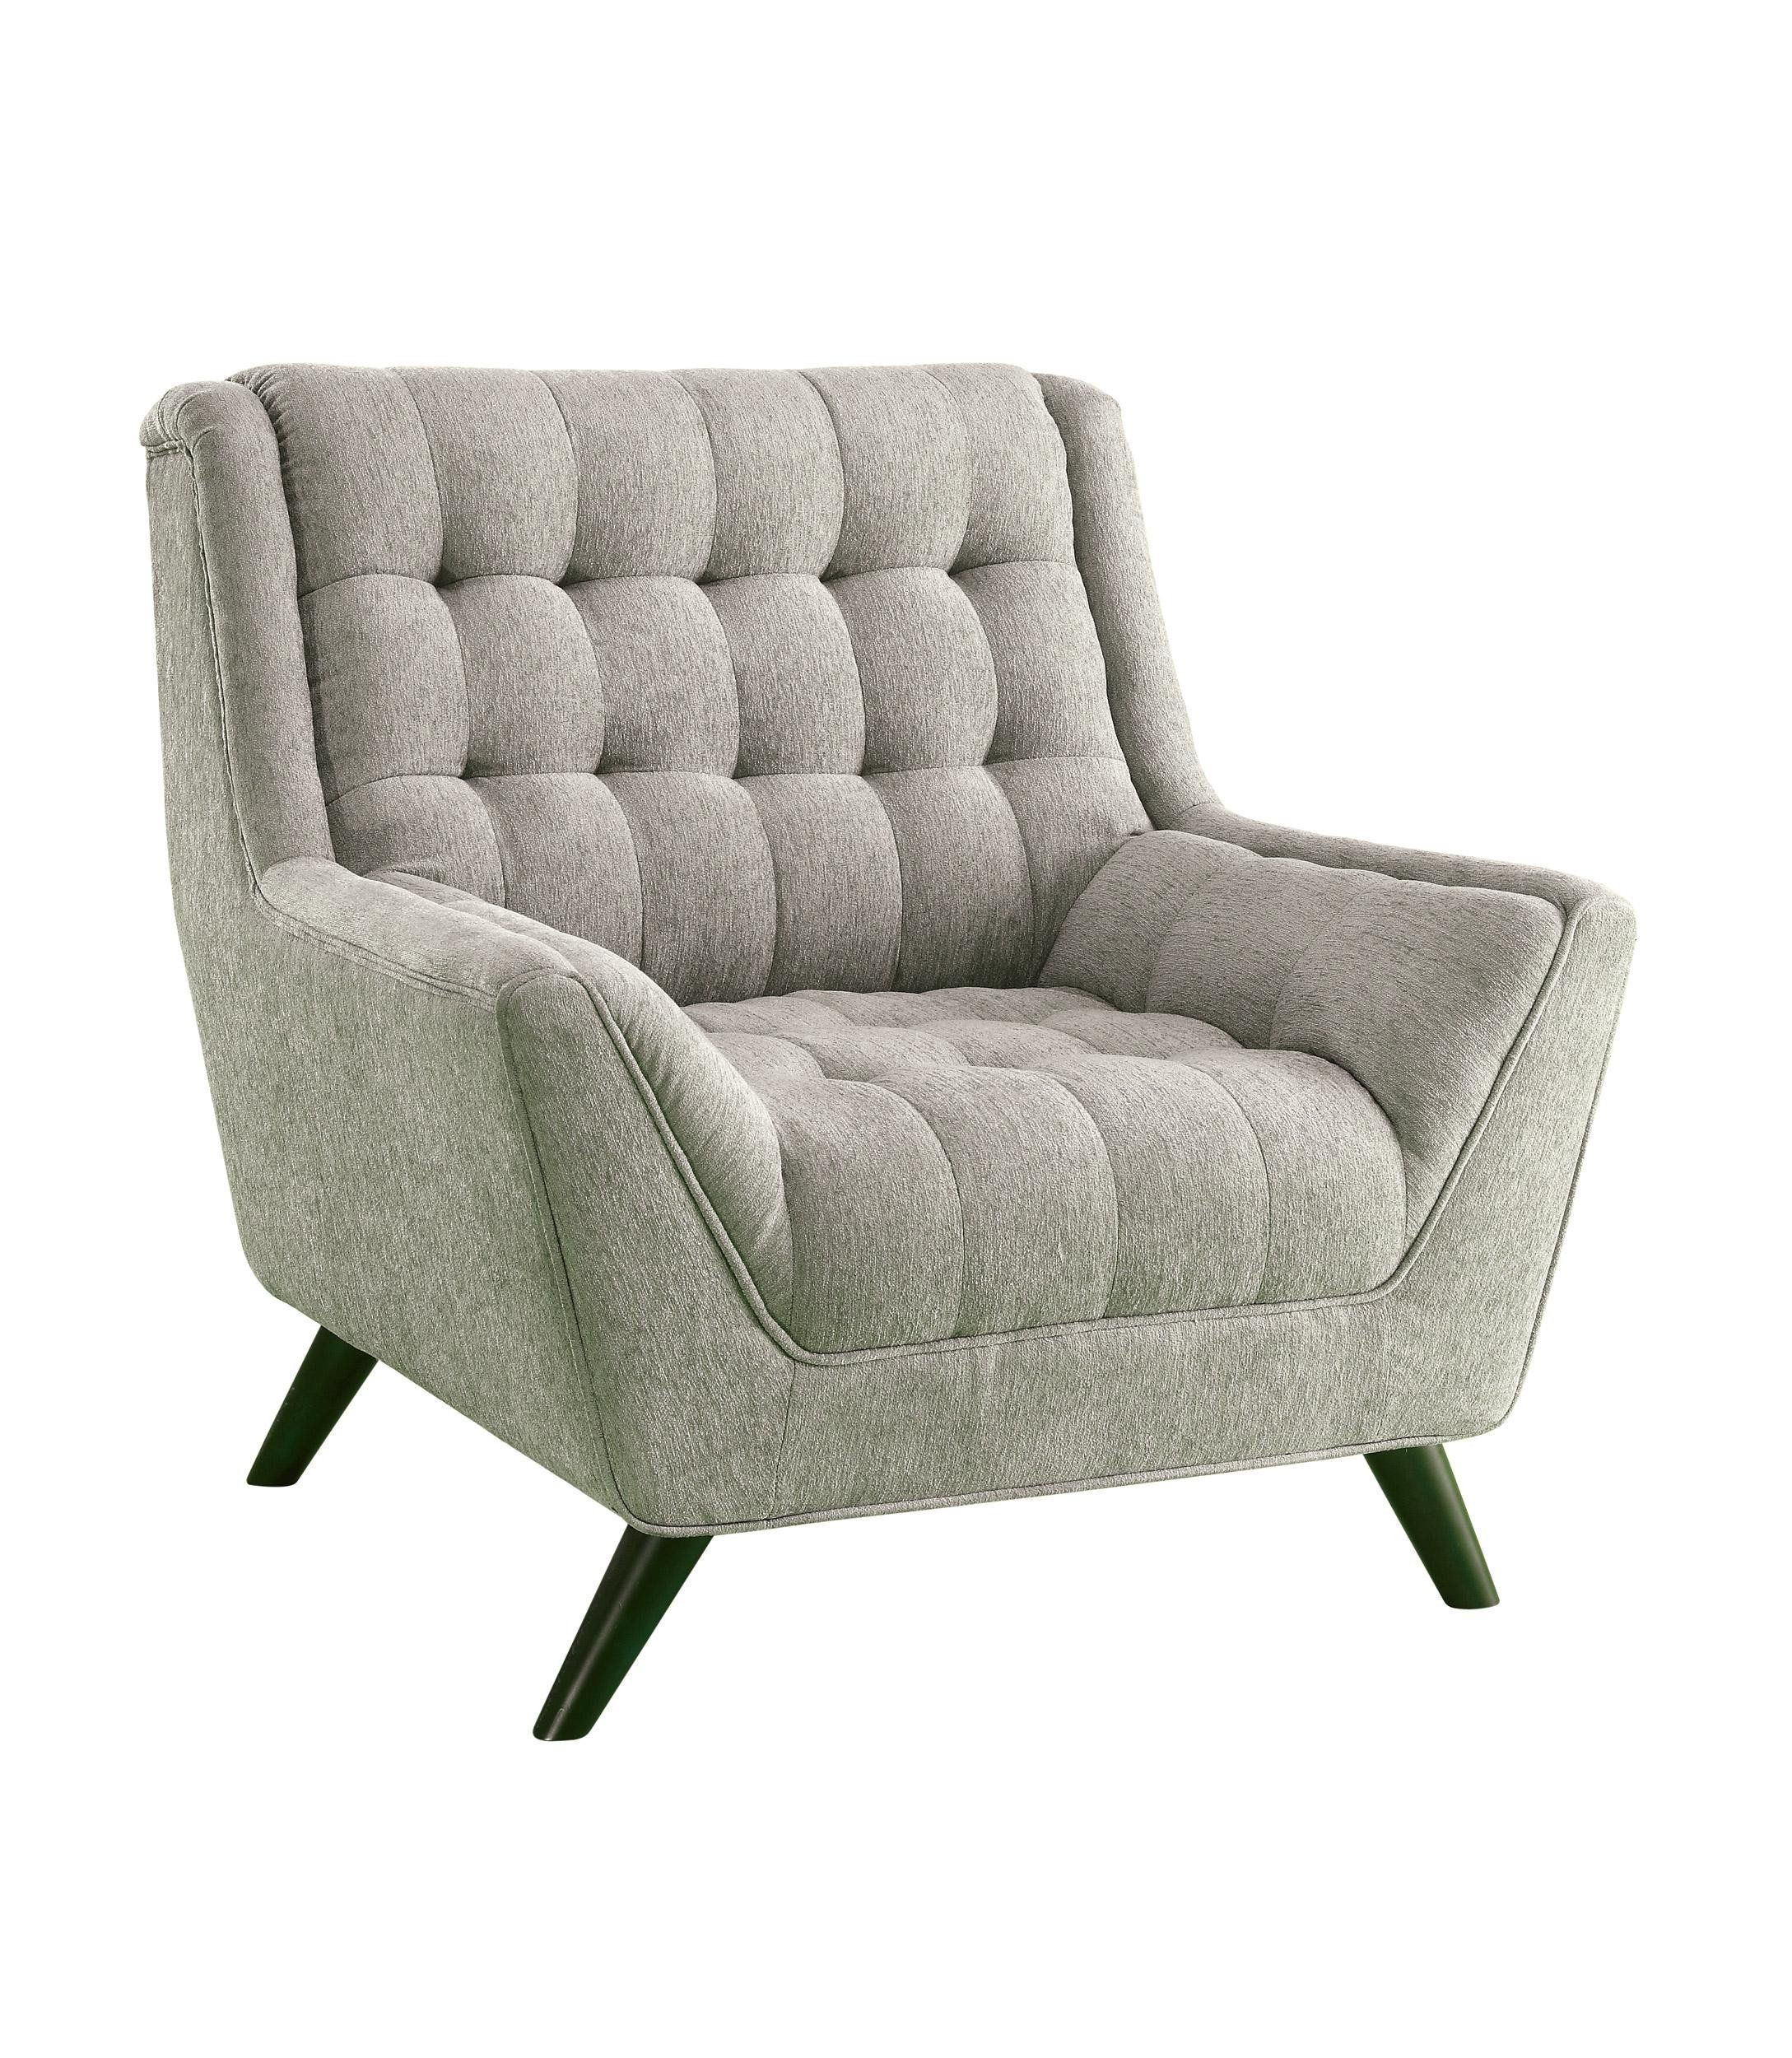 natalia grey retro chair home lust pinterest retro gray and